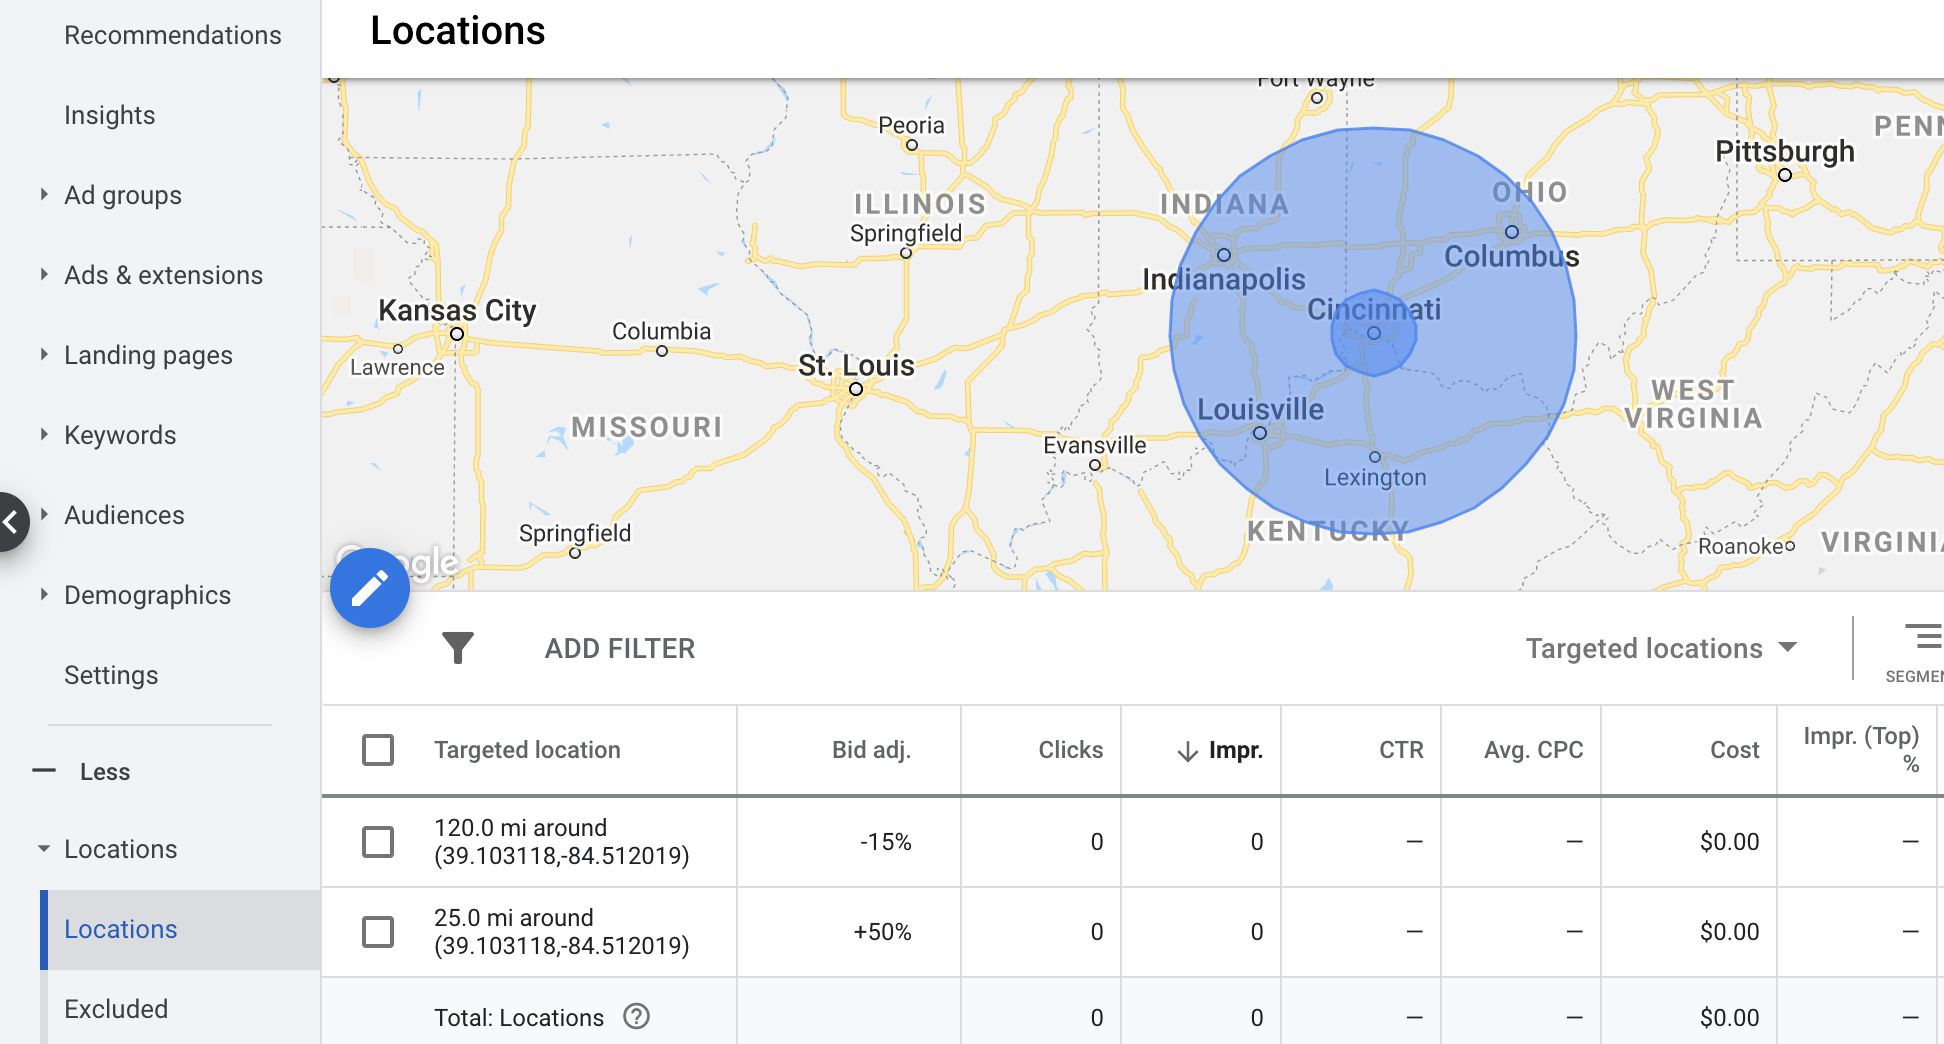 Locations targeting map in Google Ads using two radiuses